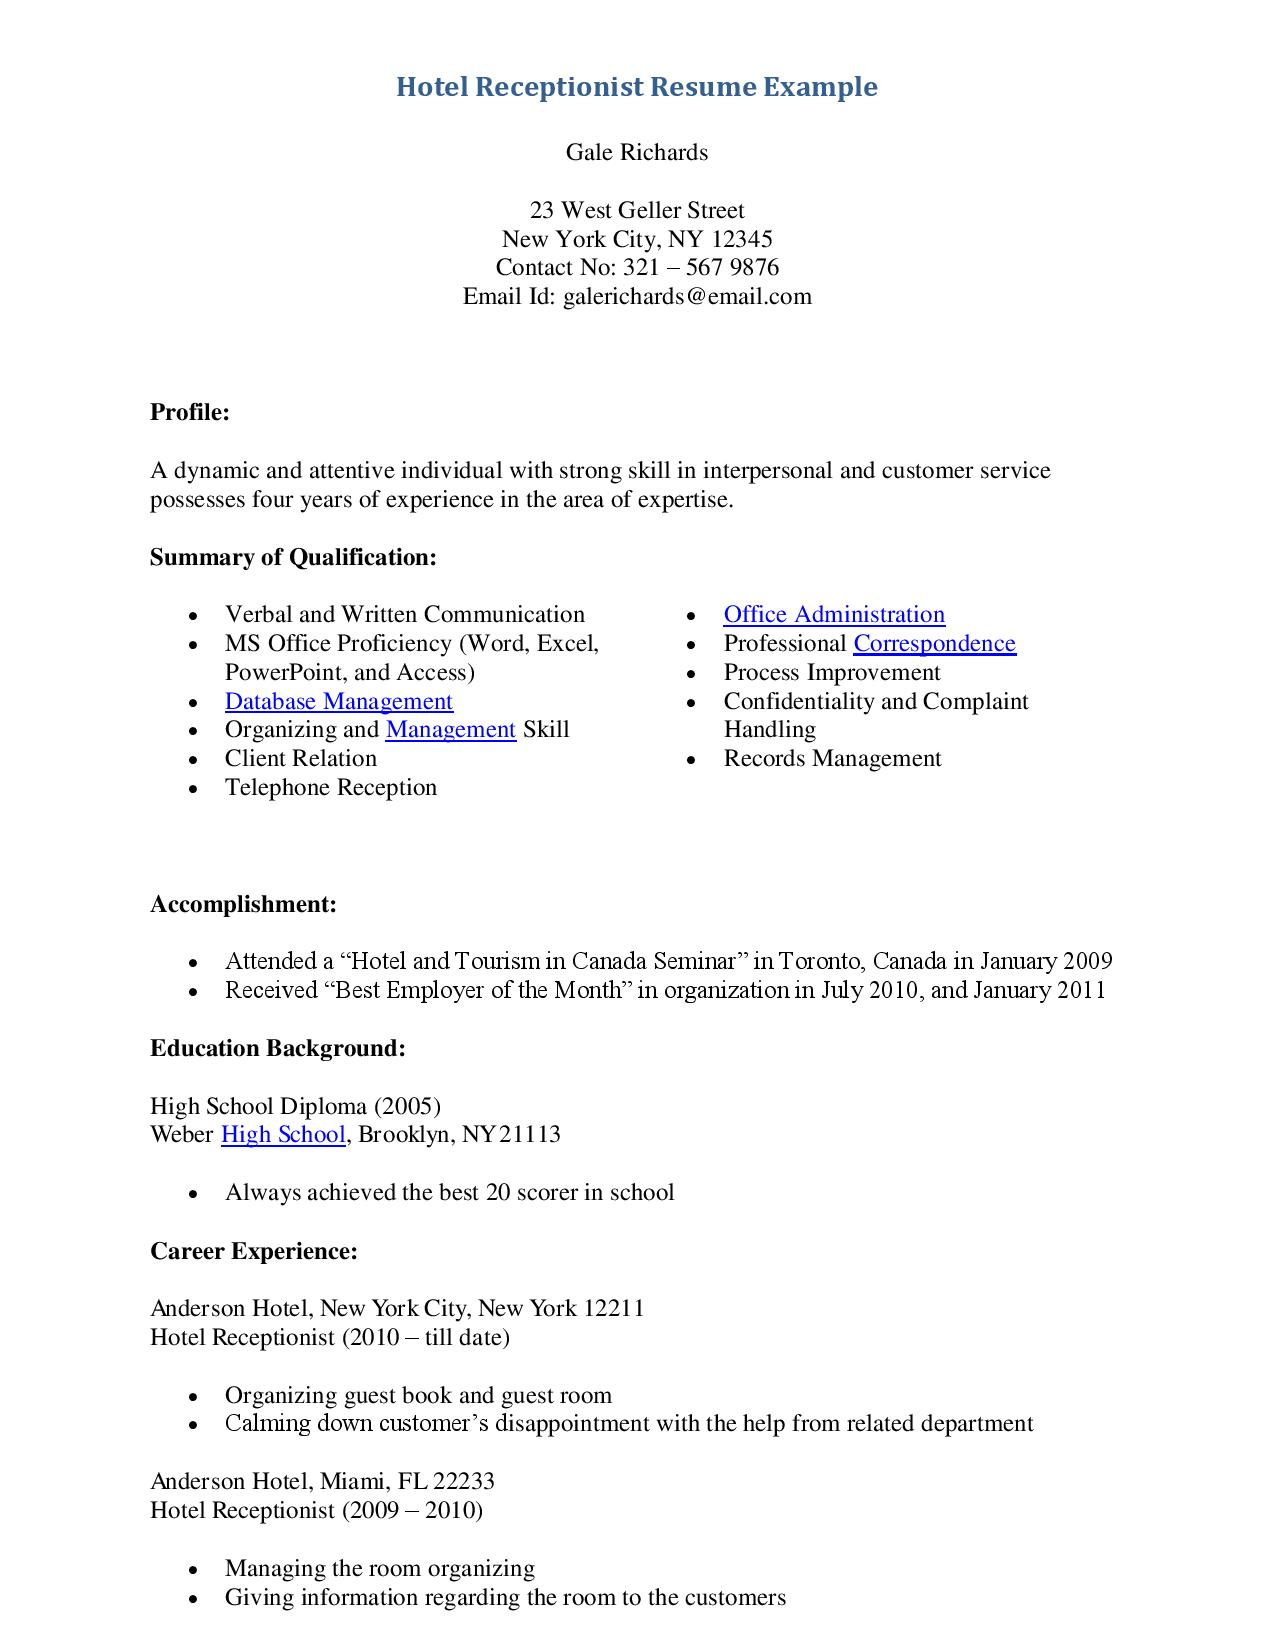 Legal Resume Sample A Consultant Resume Youth At Risk Research